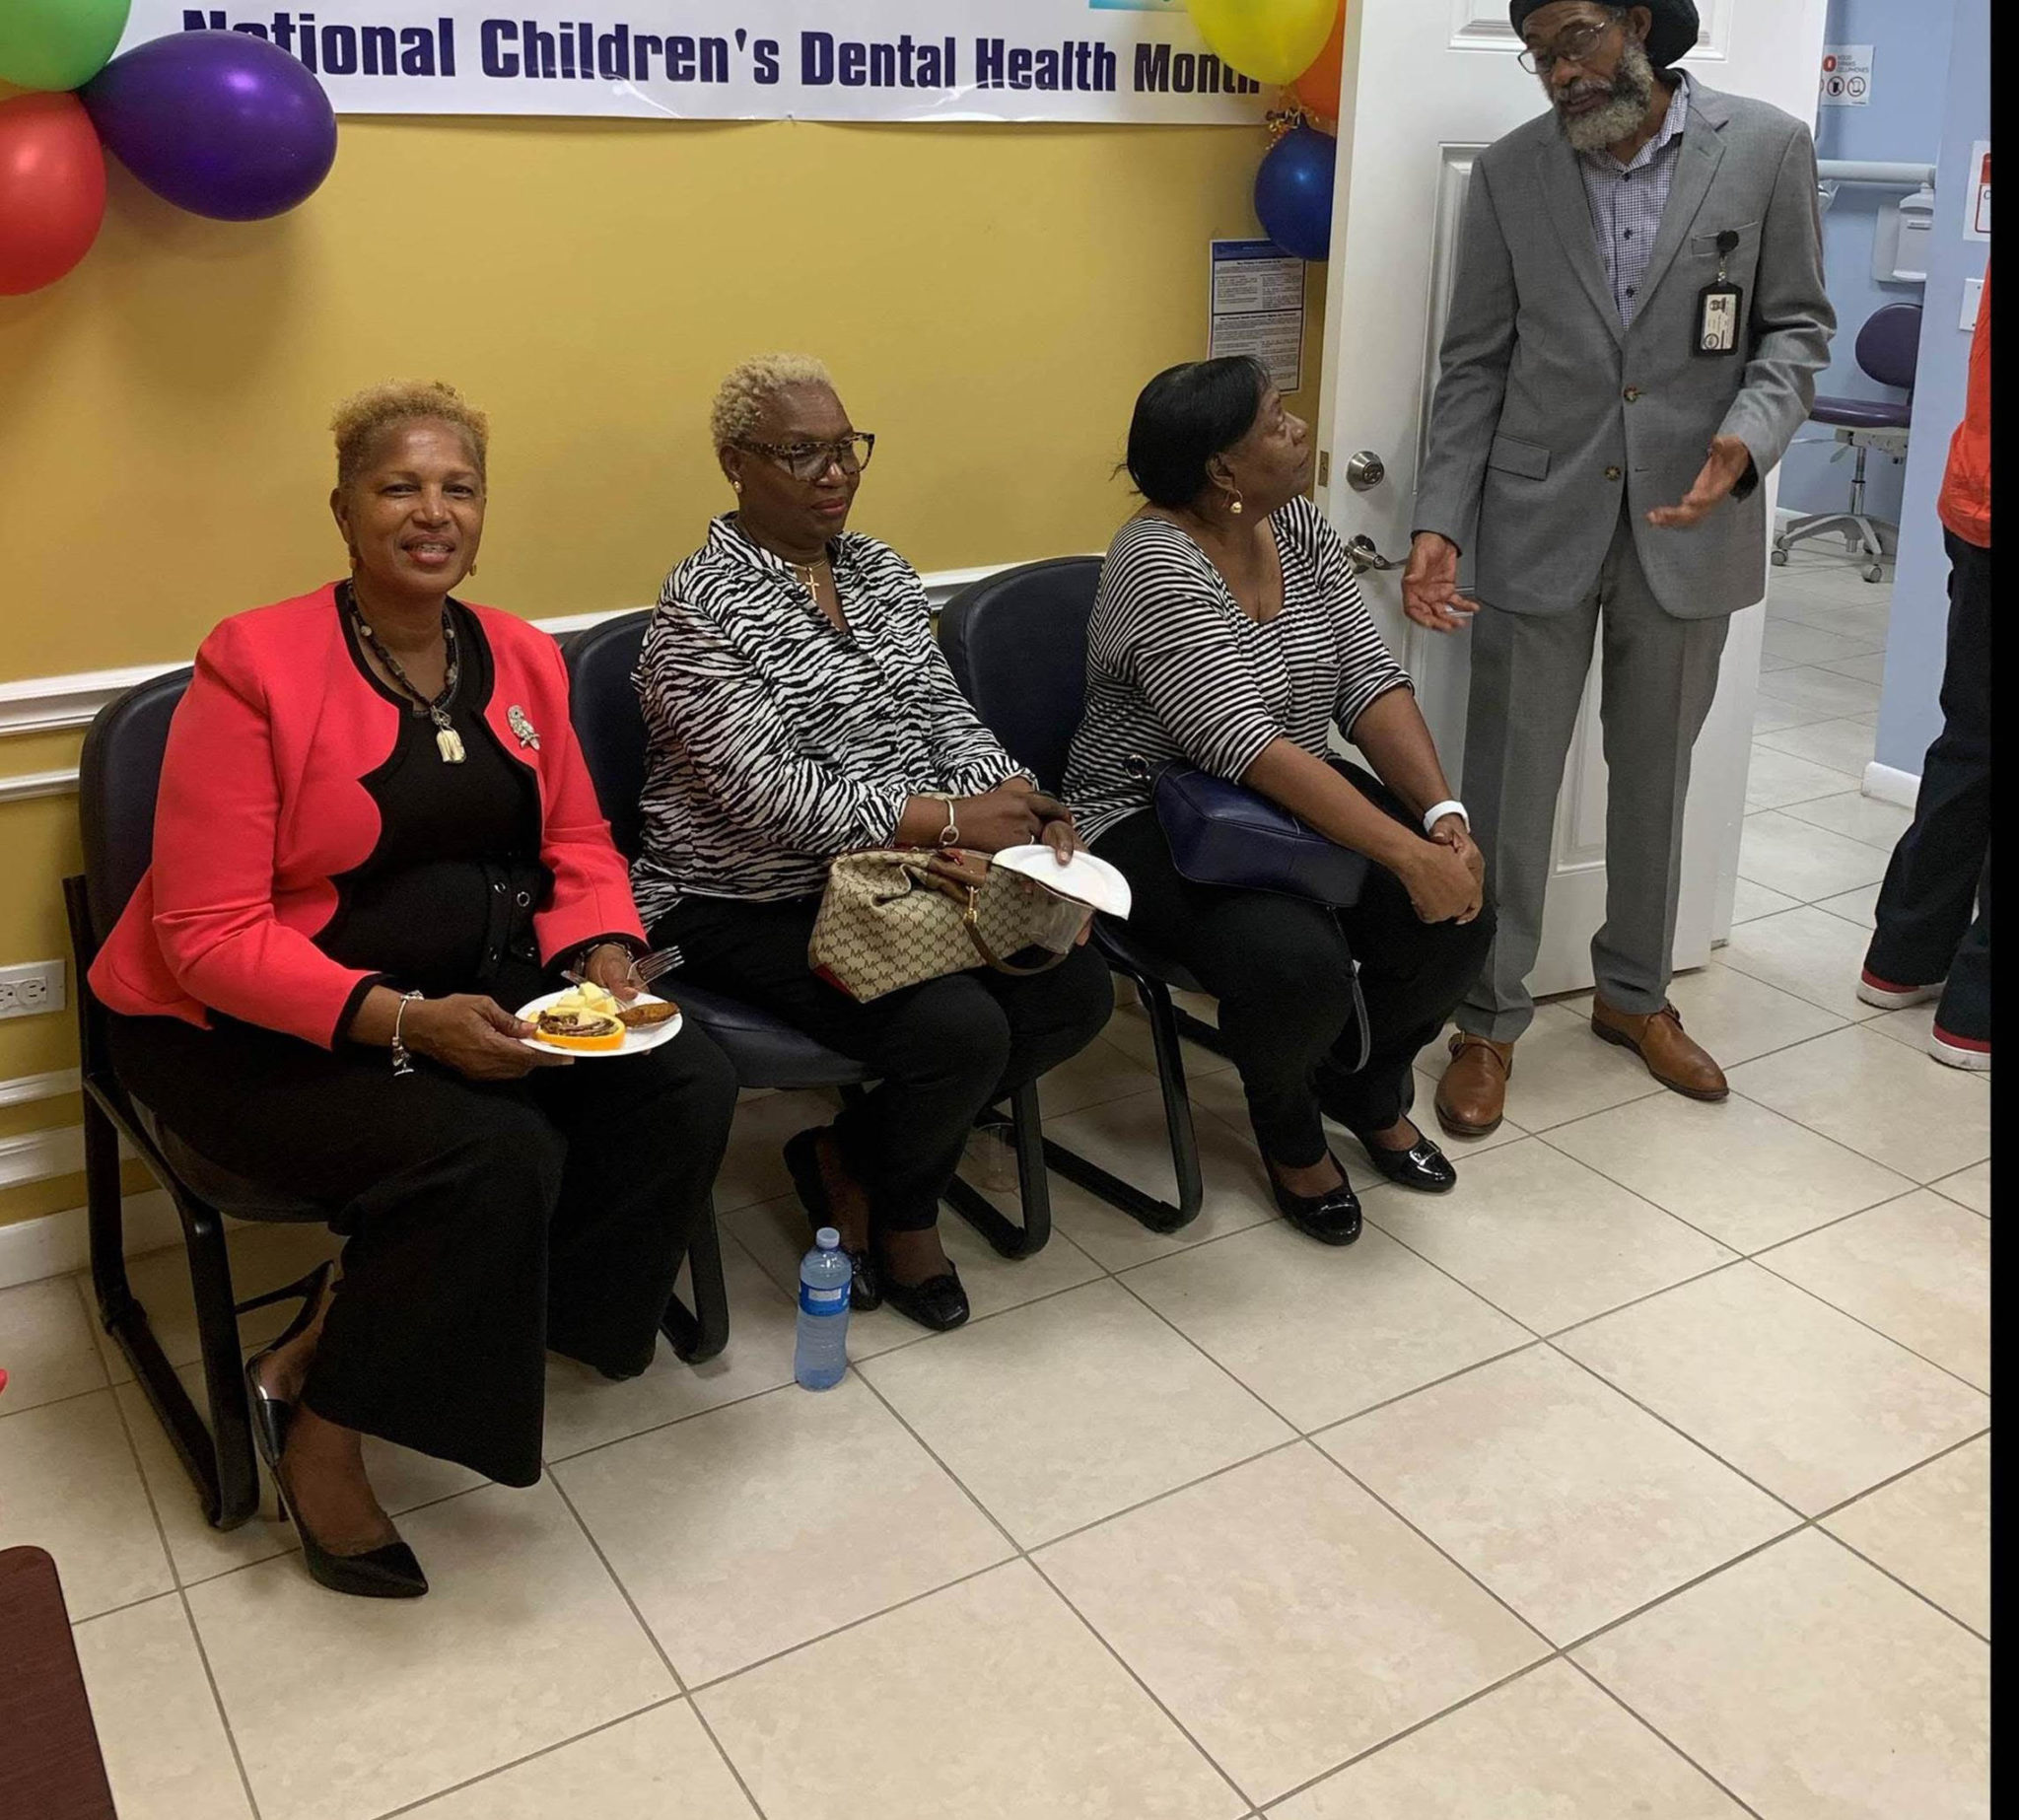 Frederiksted Health Care Executive Director Masserae Sprauve Webster and others attended the soft opening of the Estate Princesse dental clinic expansion. (Photo courtesy of Frederiksted Health Care)